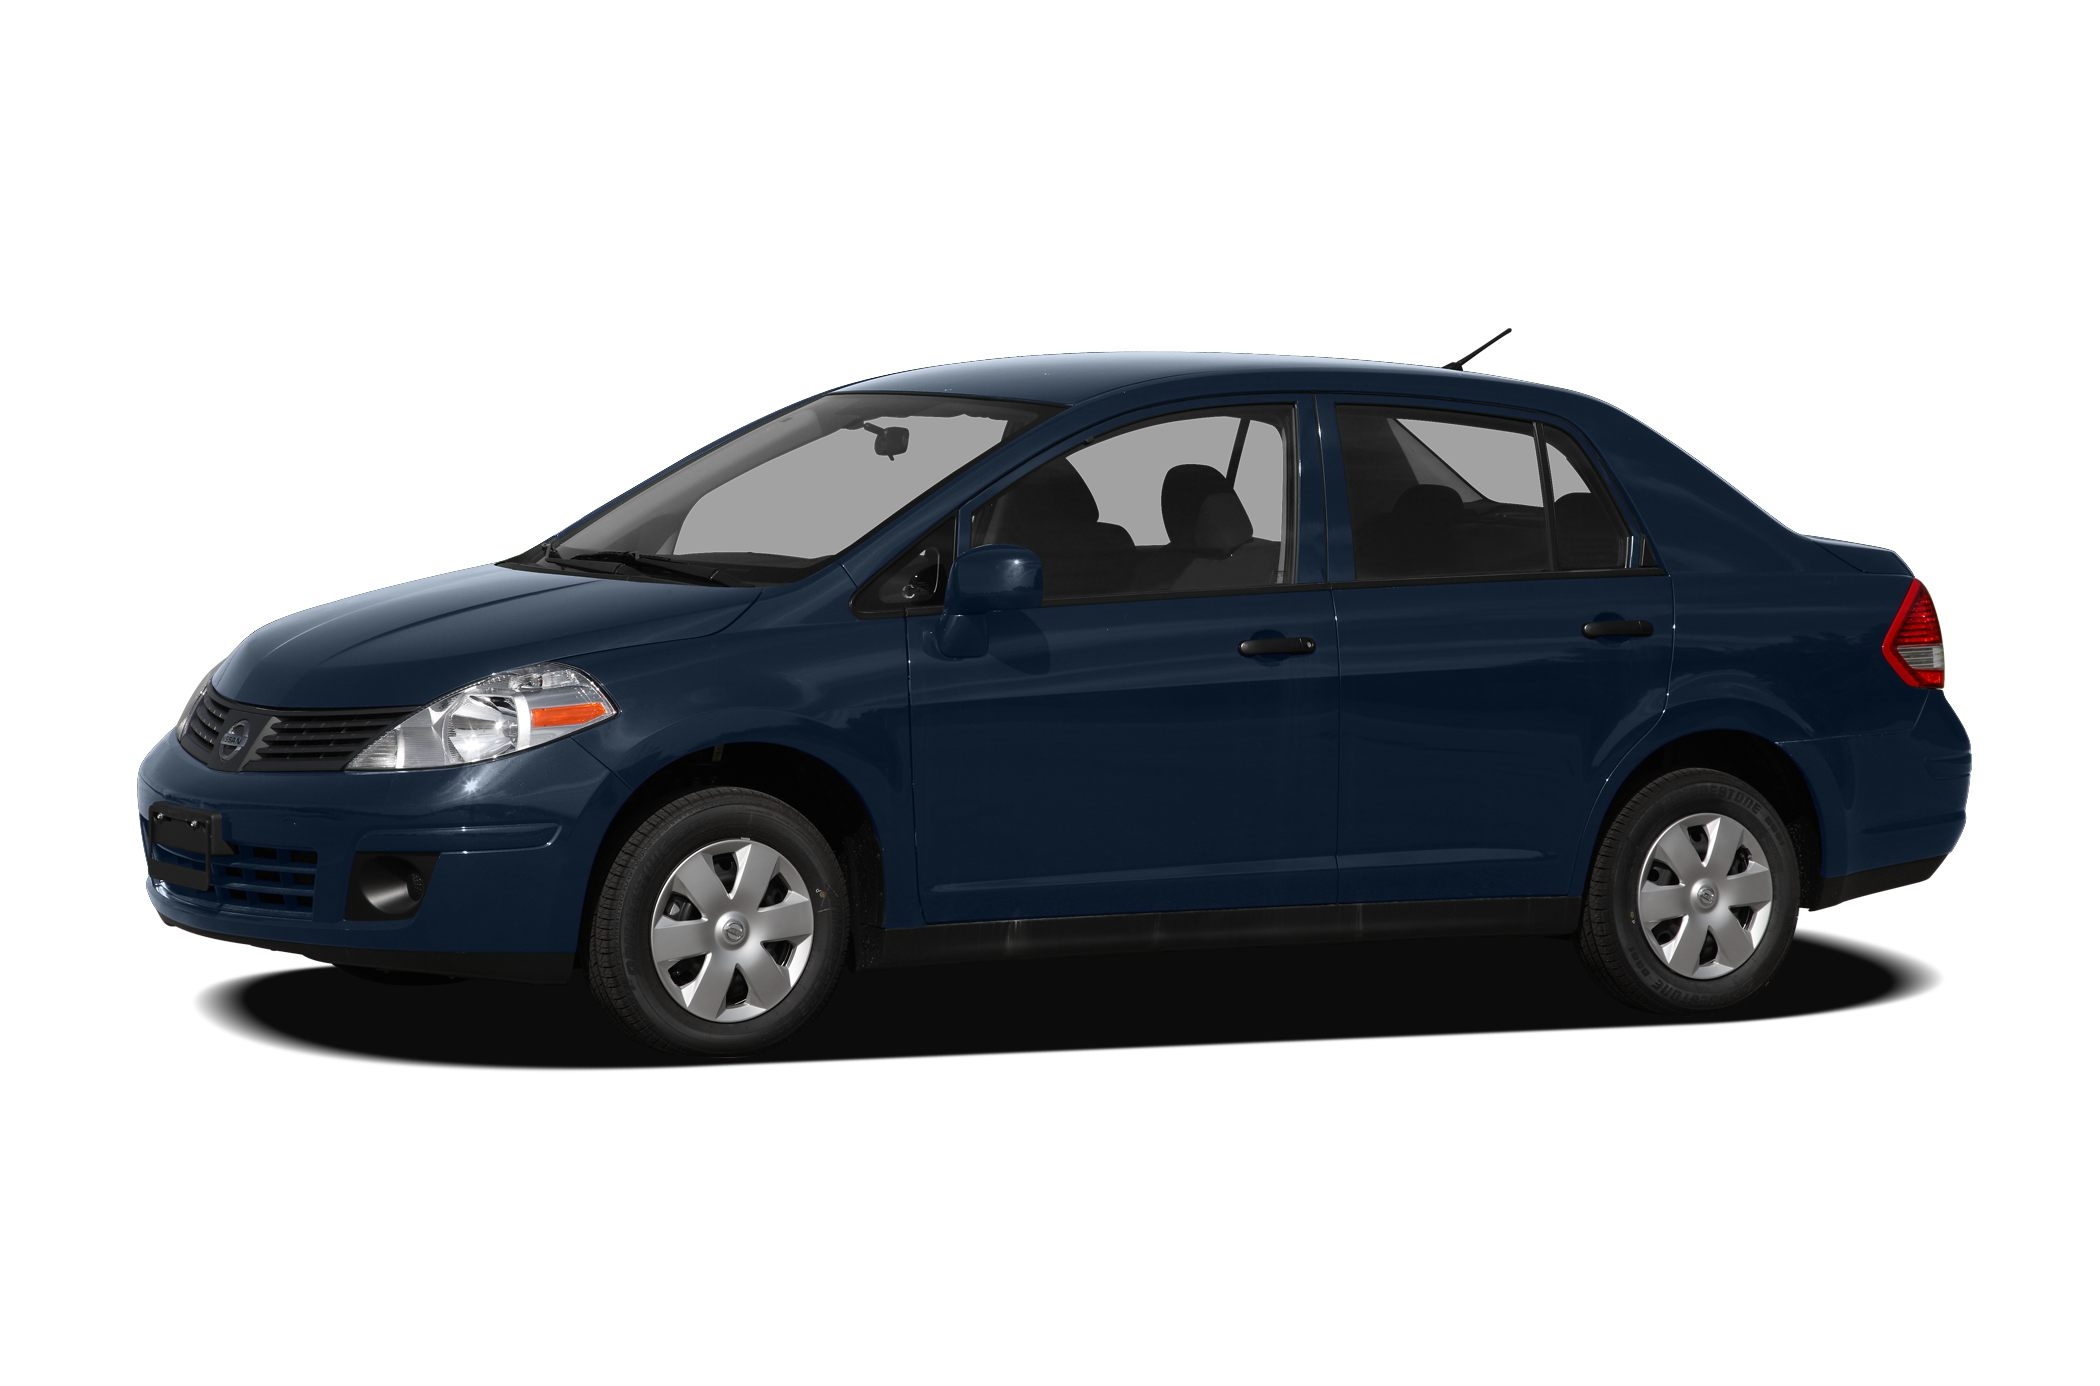 2011 Nissan Versa 1.8 S Hatchback for sale in Machesney Park for $8,998 with 54,388 miles.